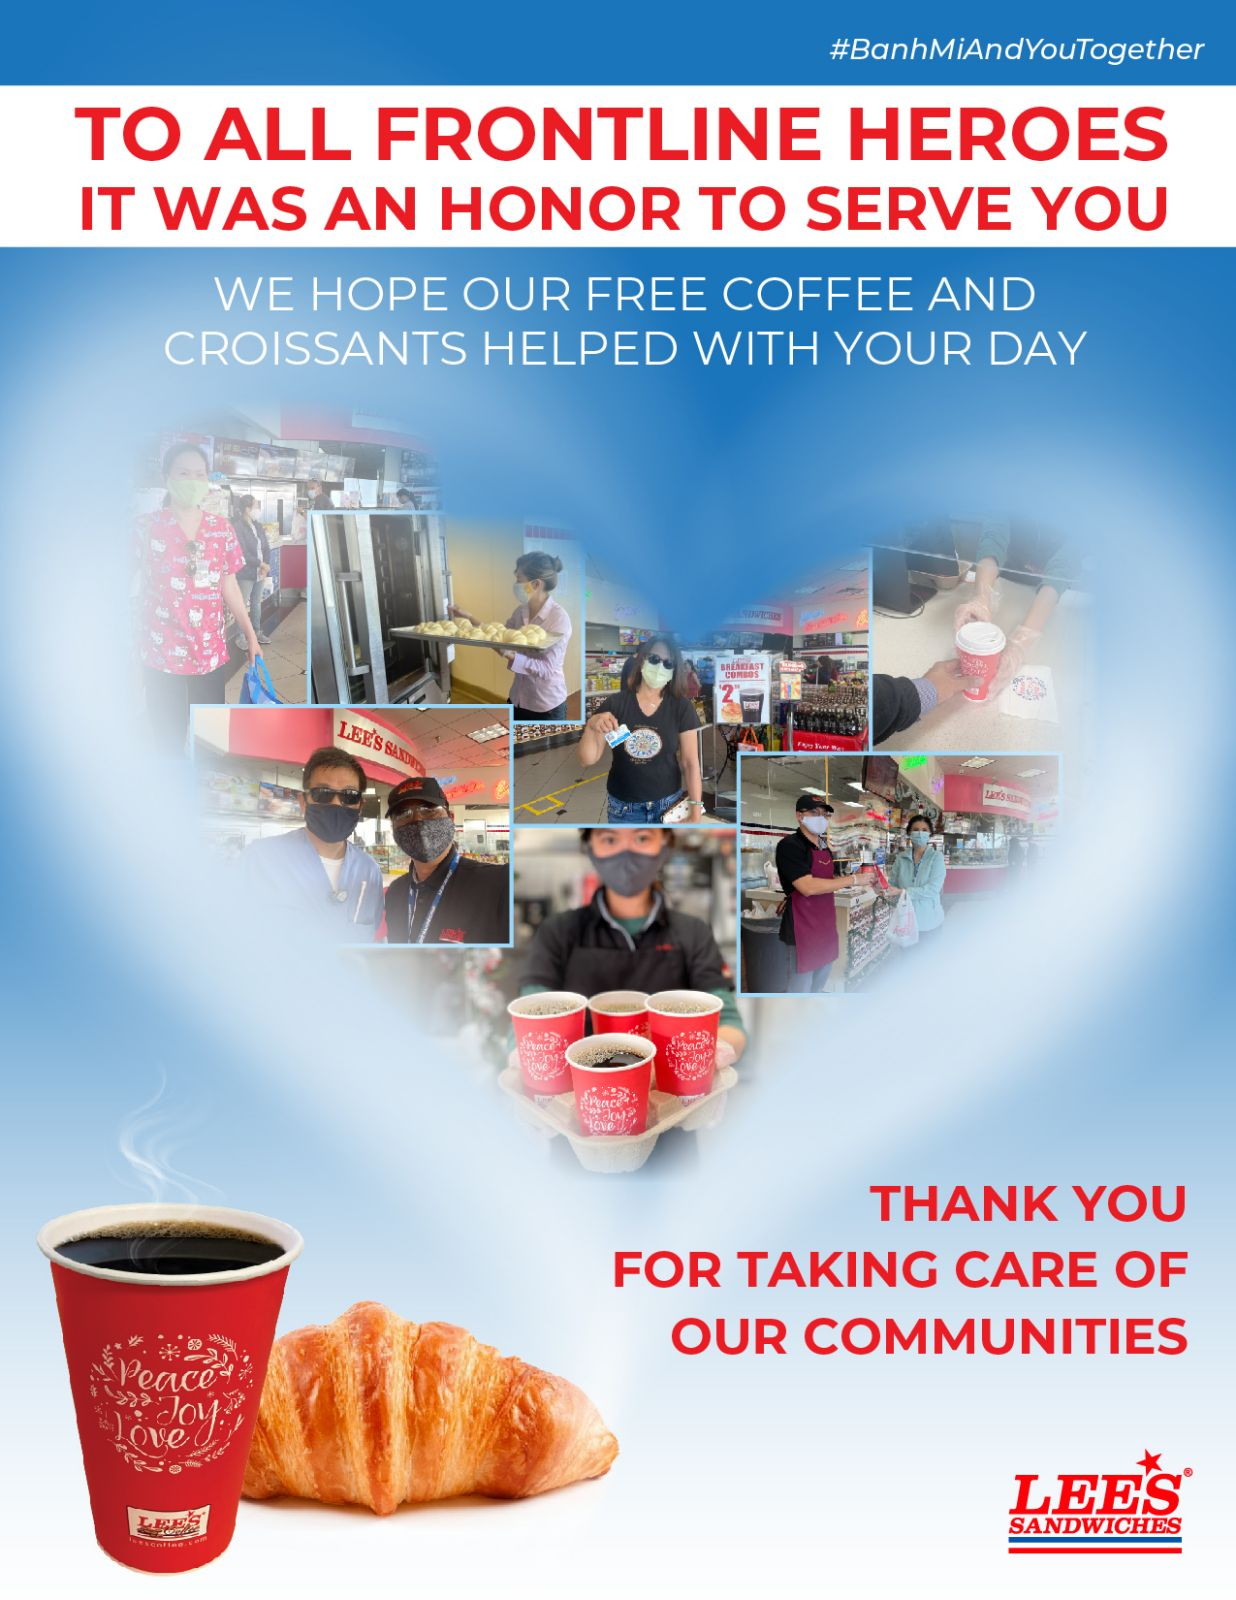 To all Frontline Heroes, it was an honor to serve you!